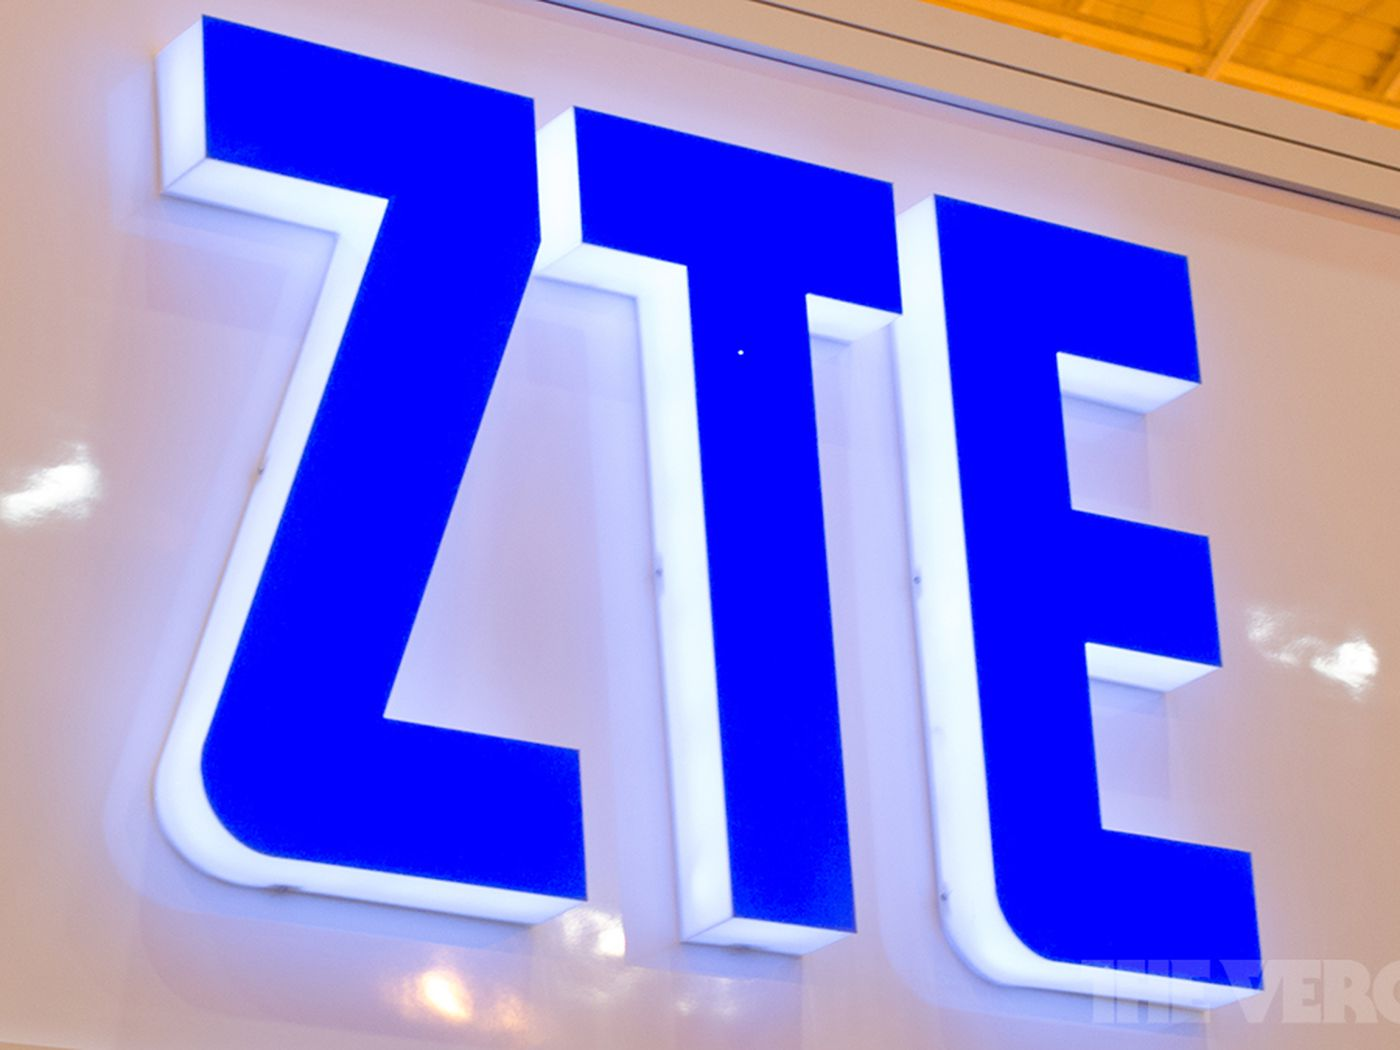 China responds to United States' report against ZTE and Huawei ...